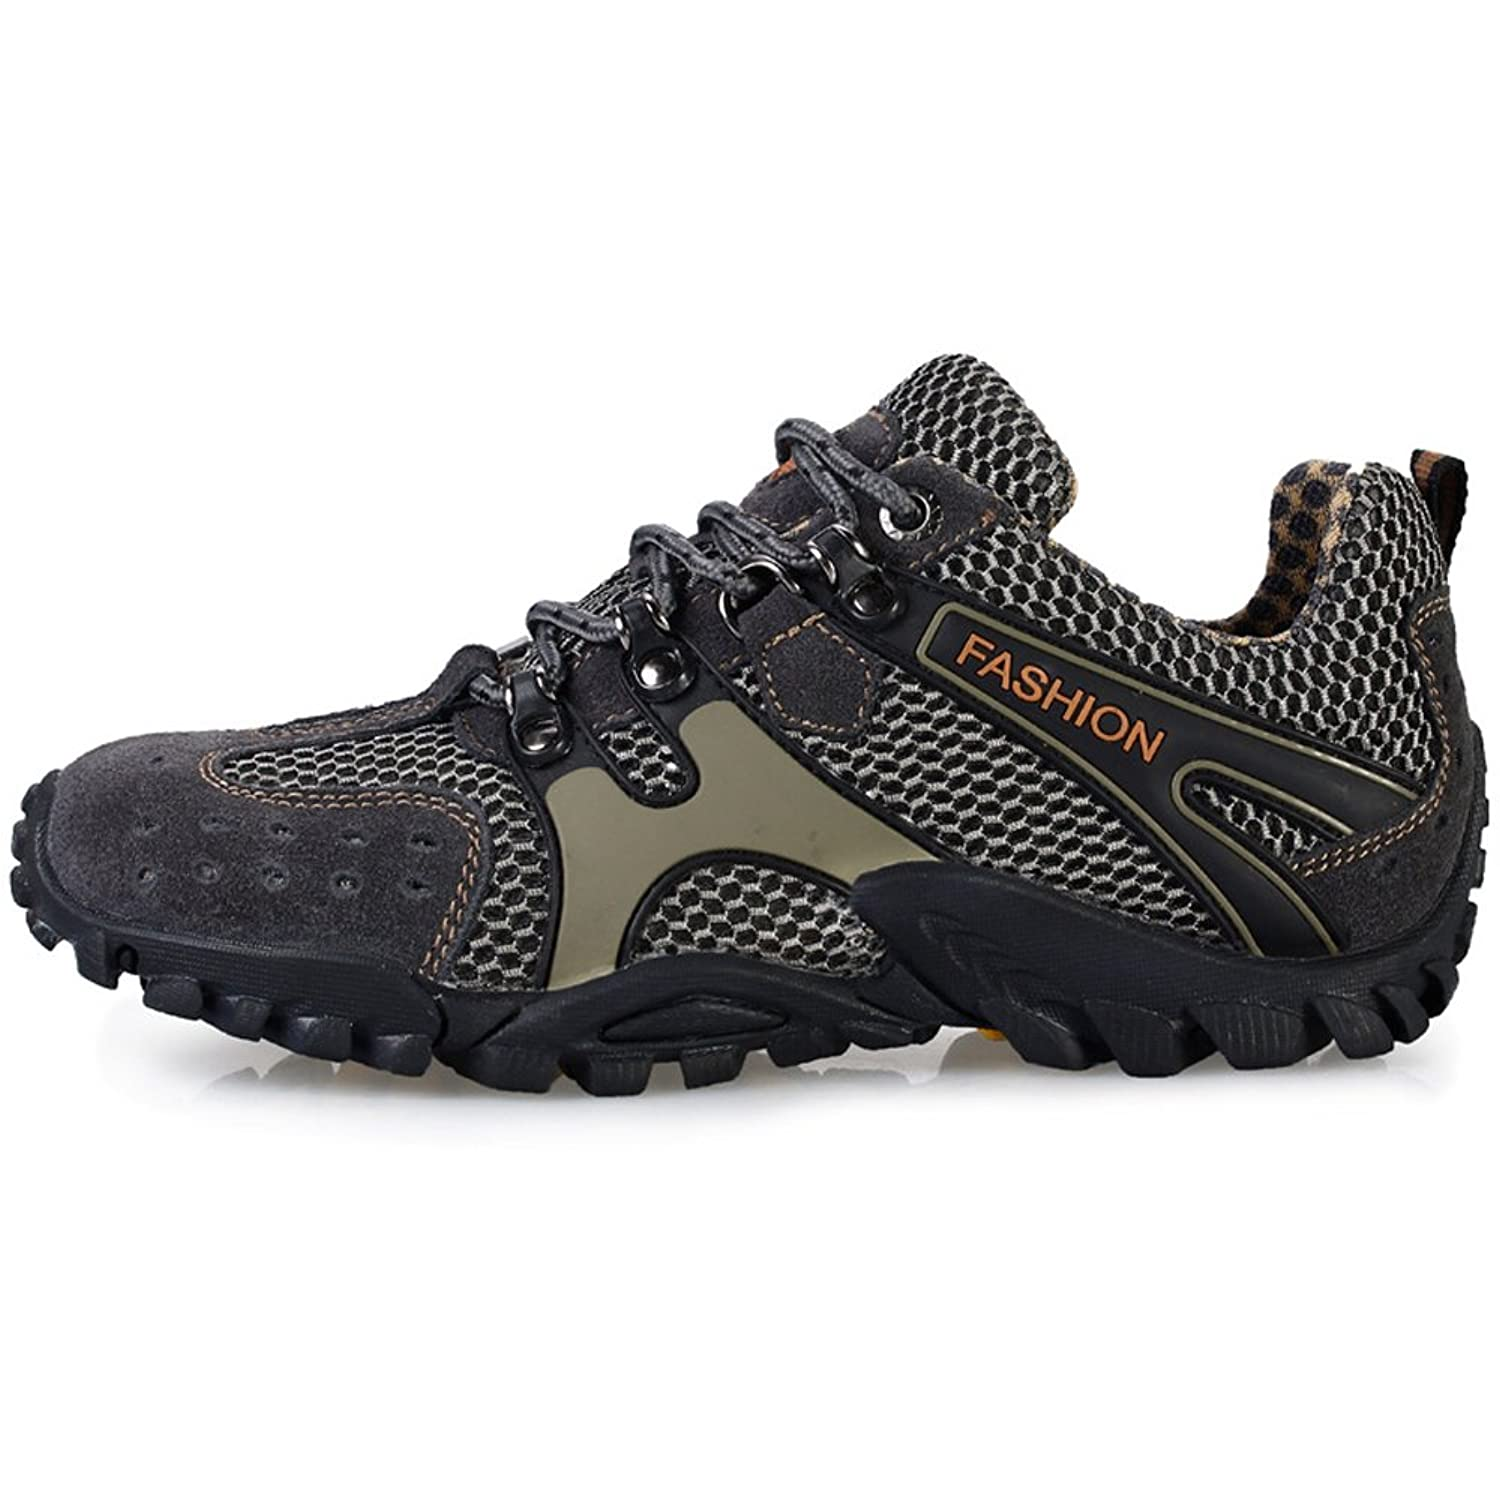 A Point Men's Outdoor Climbing Shoes